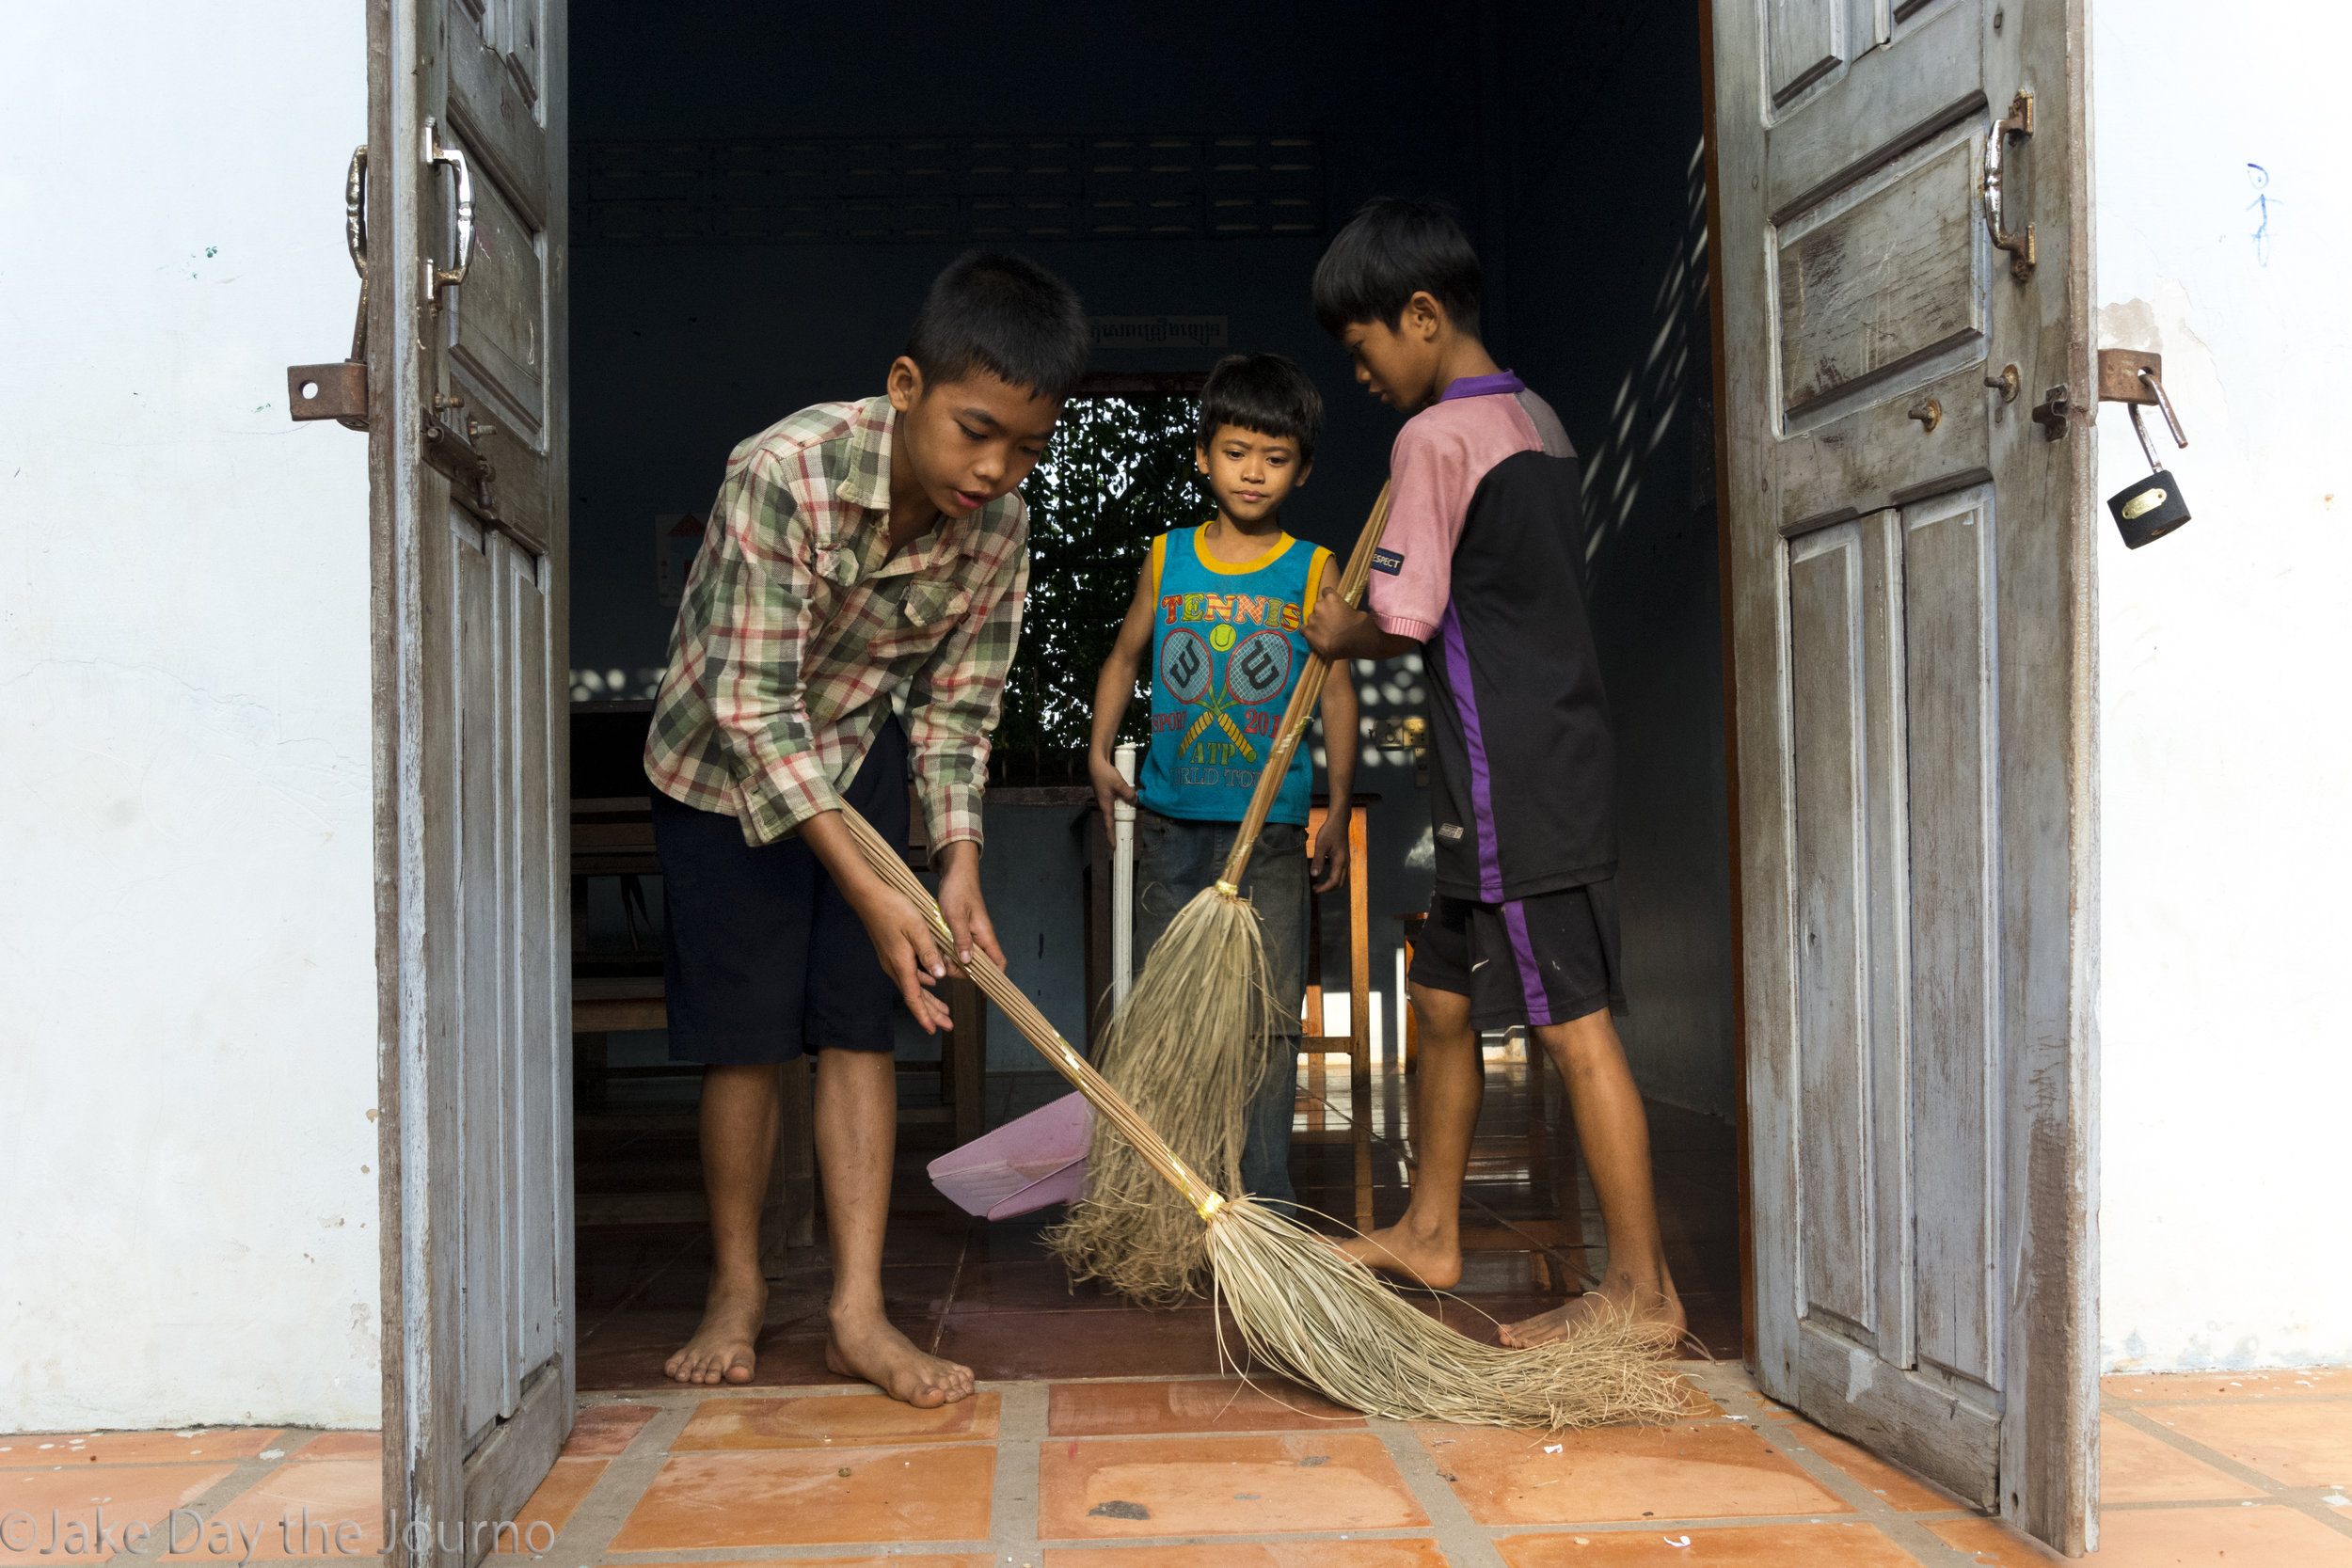 Makara, 12, Fieyok, 10, and Vihyo, 11, sweep the classroom before class at Savong's School, Don Teav Village, on 25/01/18 by Jake Day. The students that arrive early sweep the school every morning before class.